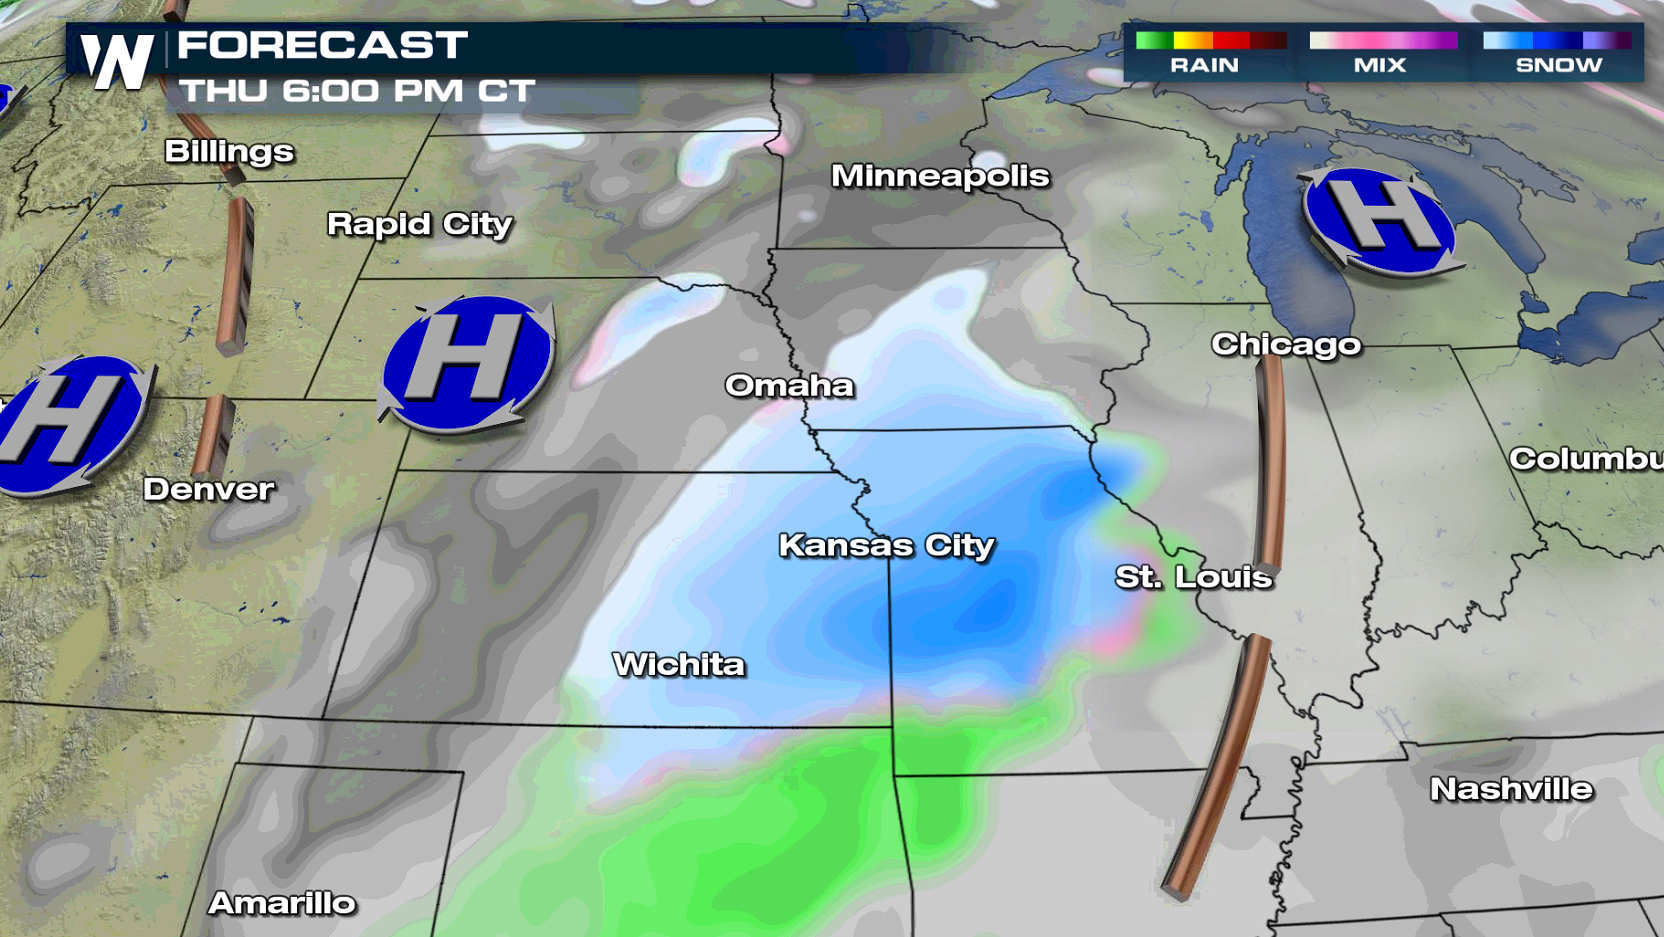 Snowfall Accumulations Ahead in the Central Plains